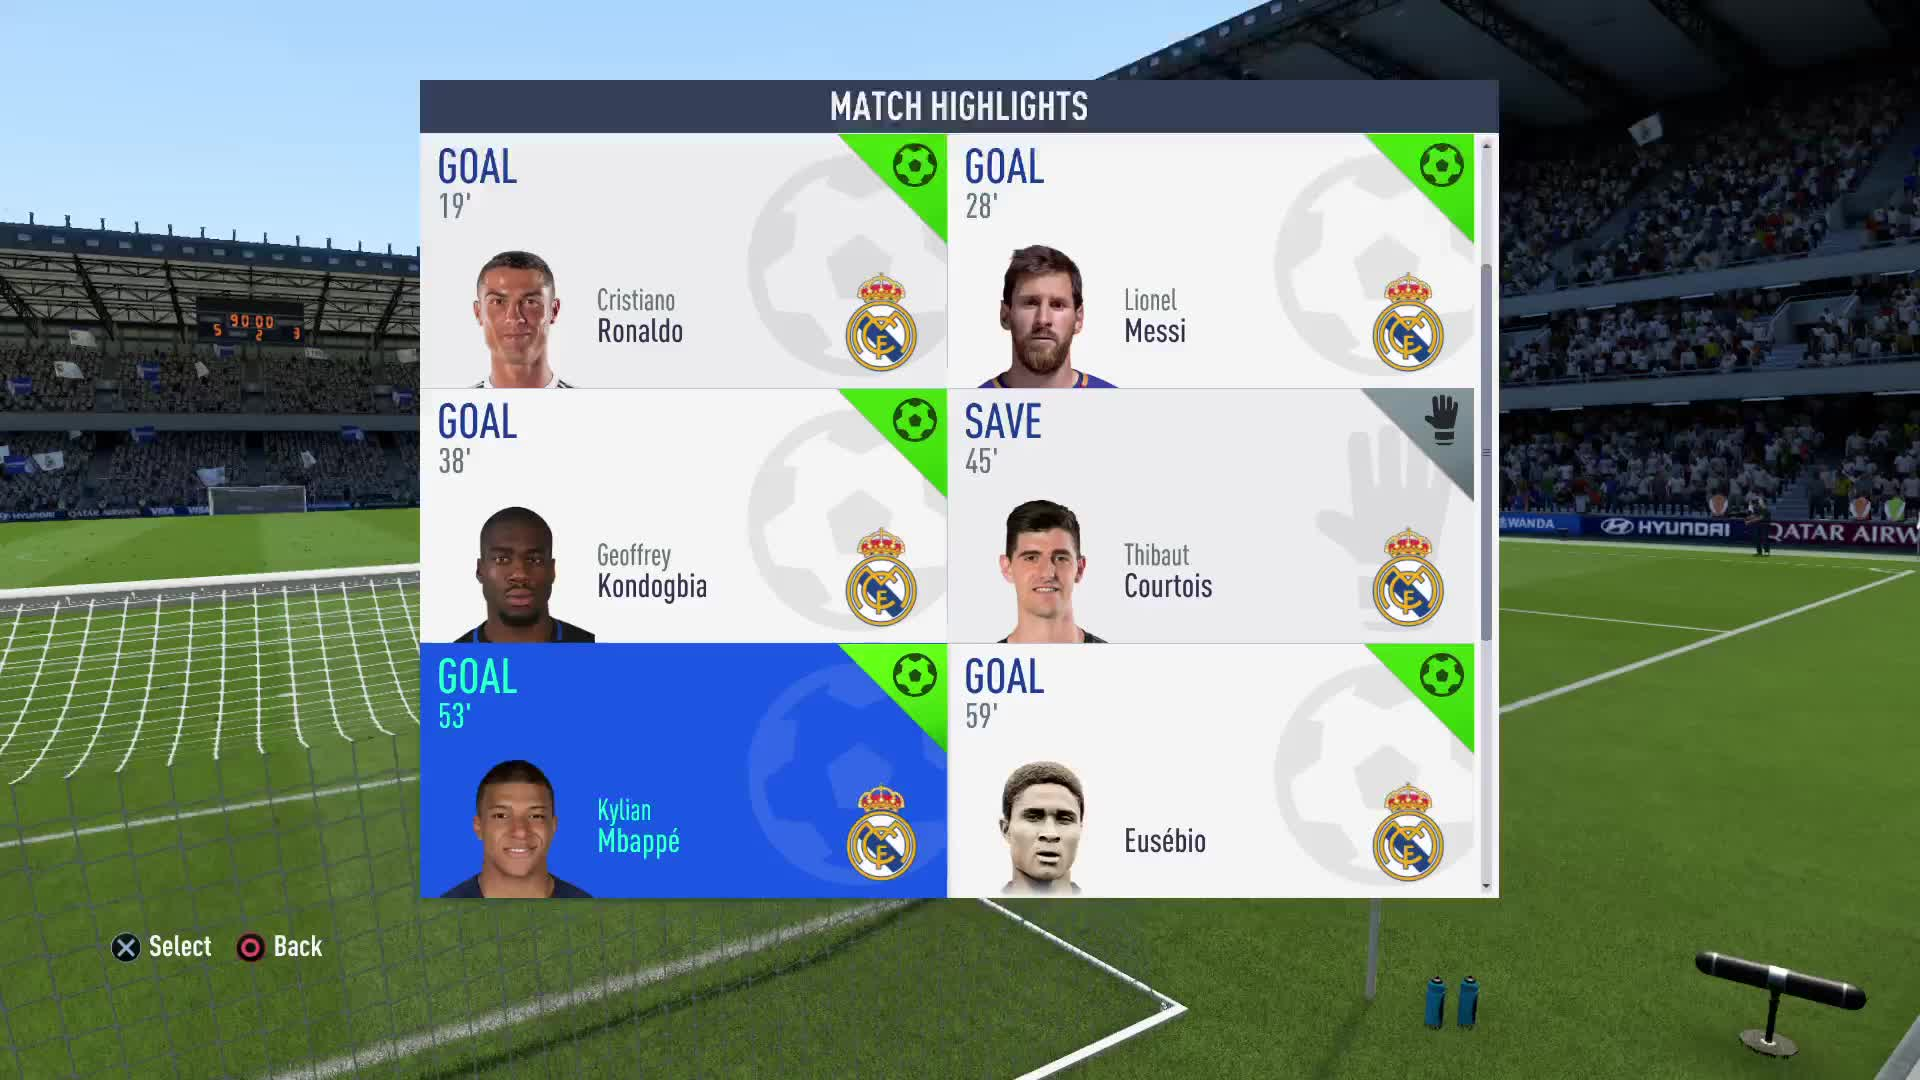 #PS4share, FIFA 19, Gaming, M1nHyoung, PlayStation 4, Sony Interactive Entertainment, 이민형, FIFA 19_20190117025835 GIFs